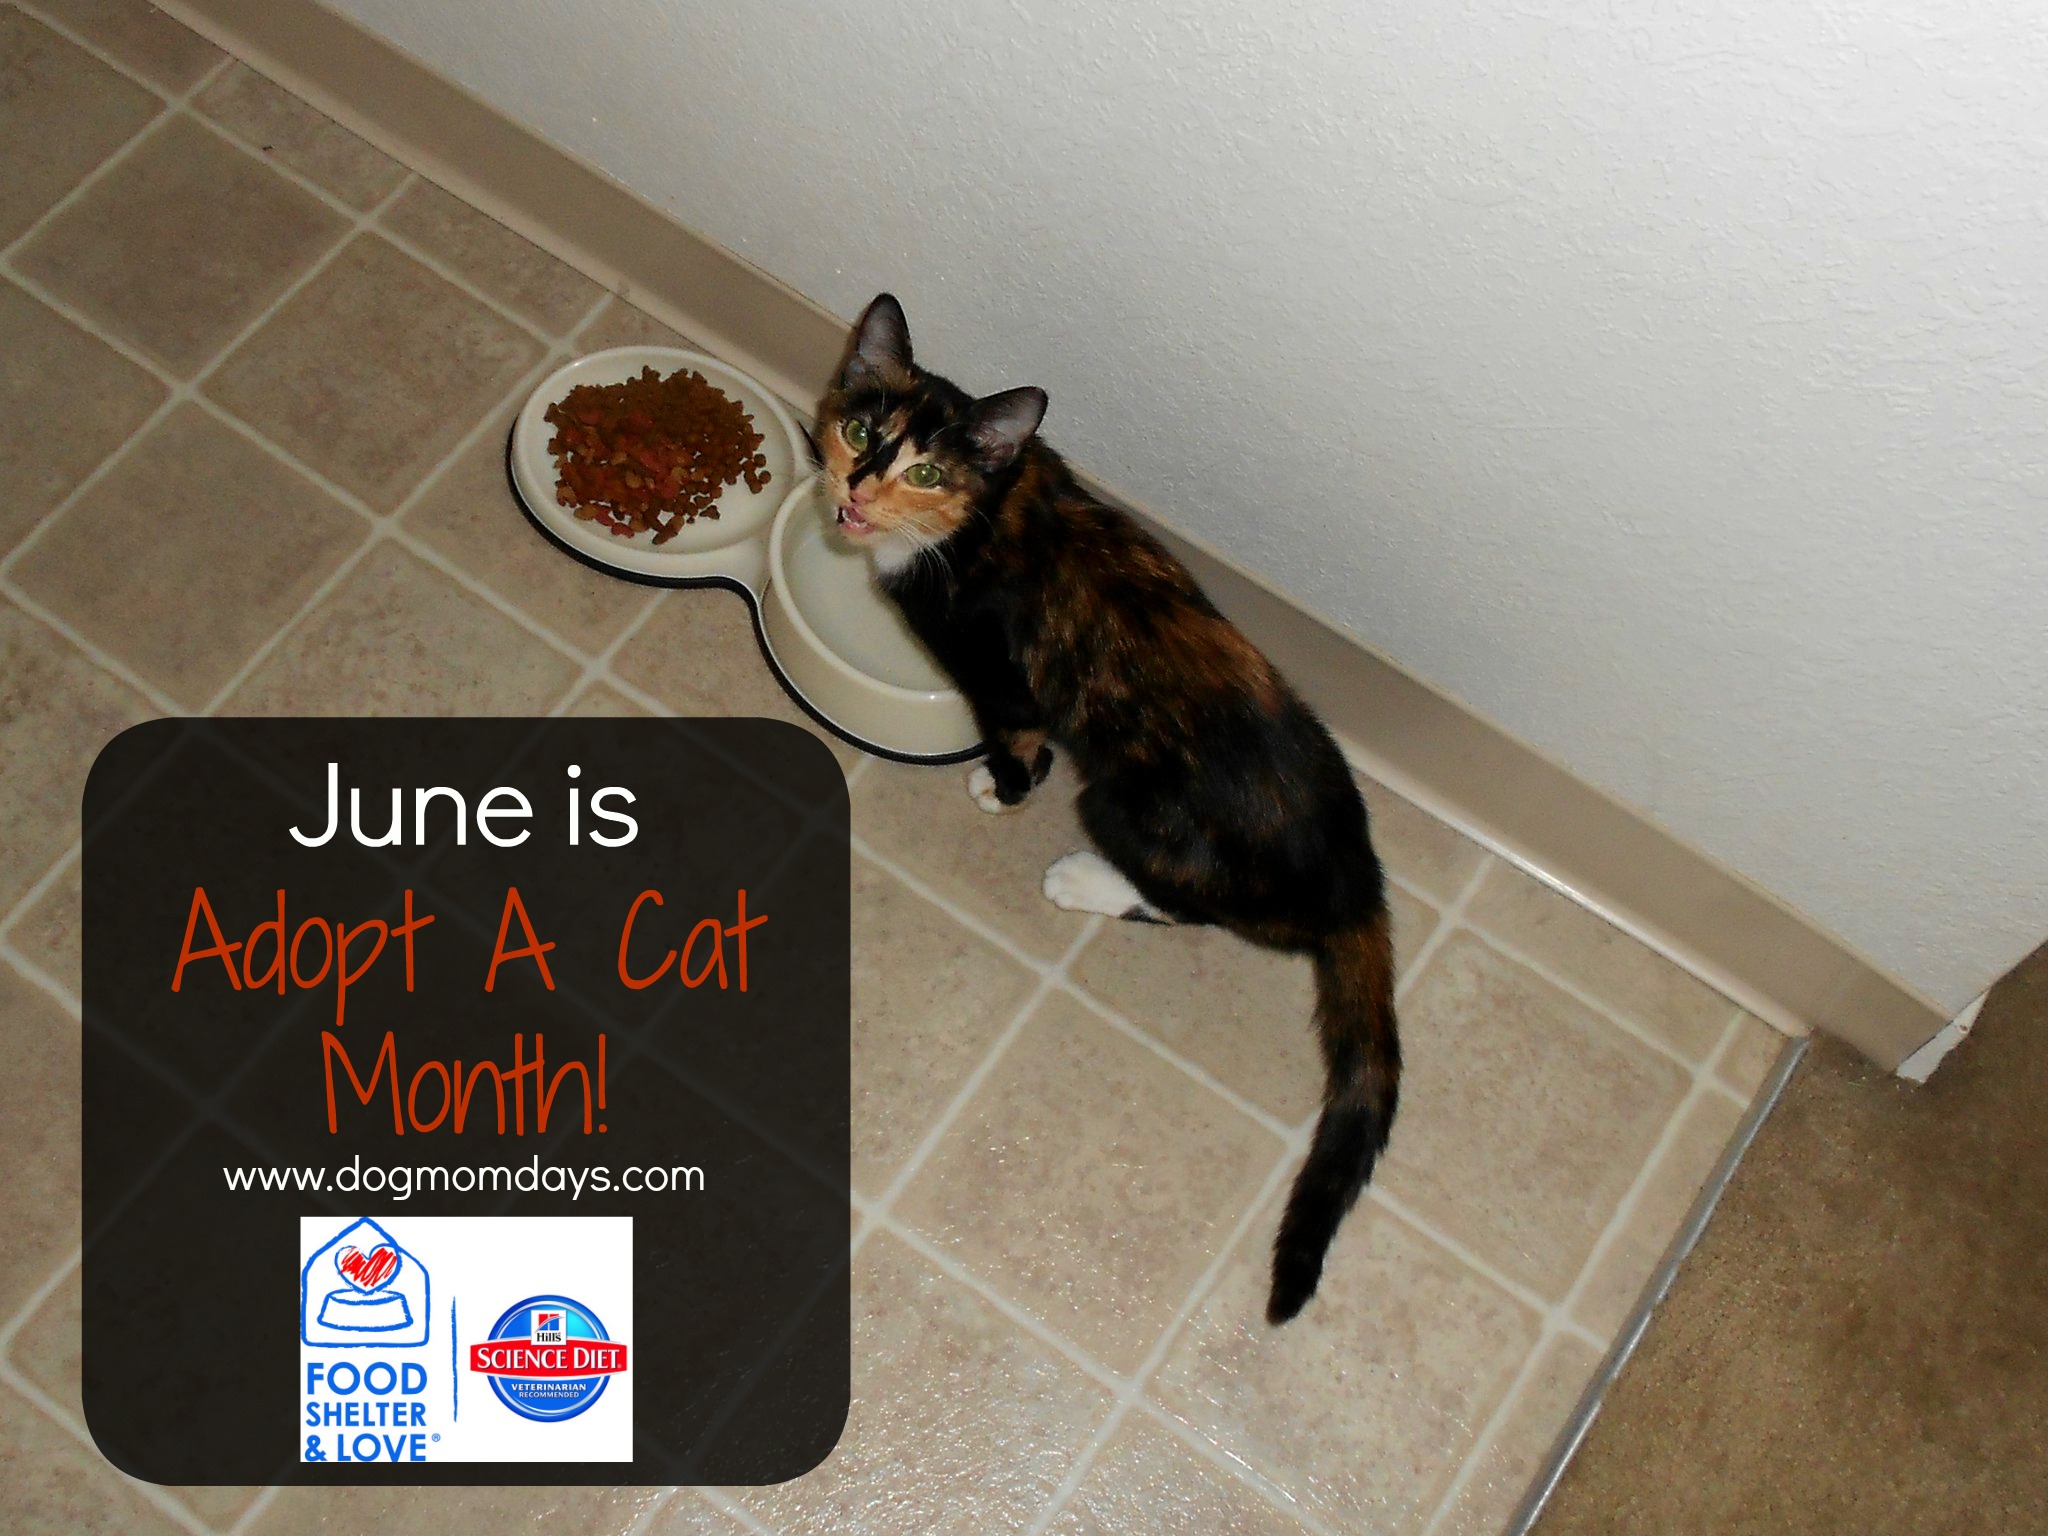 Hill's Science Diet Adopt a cat month